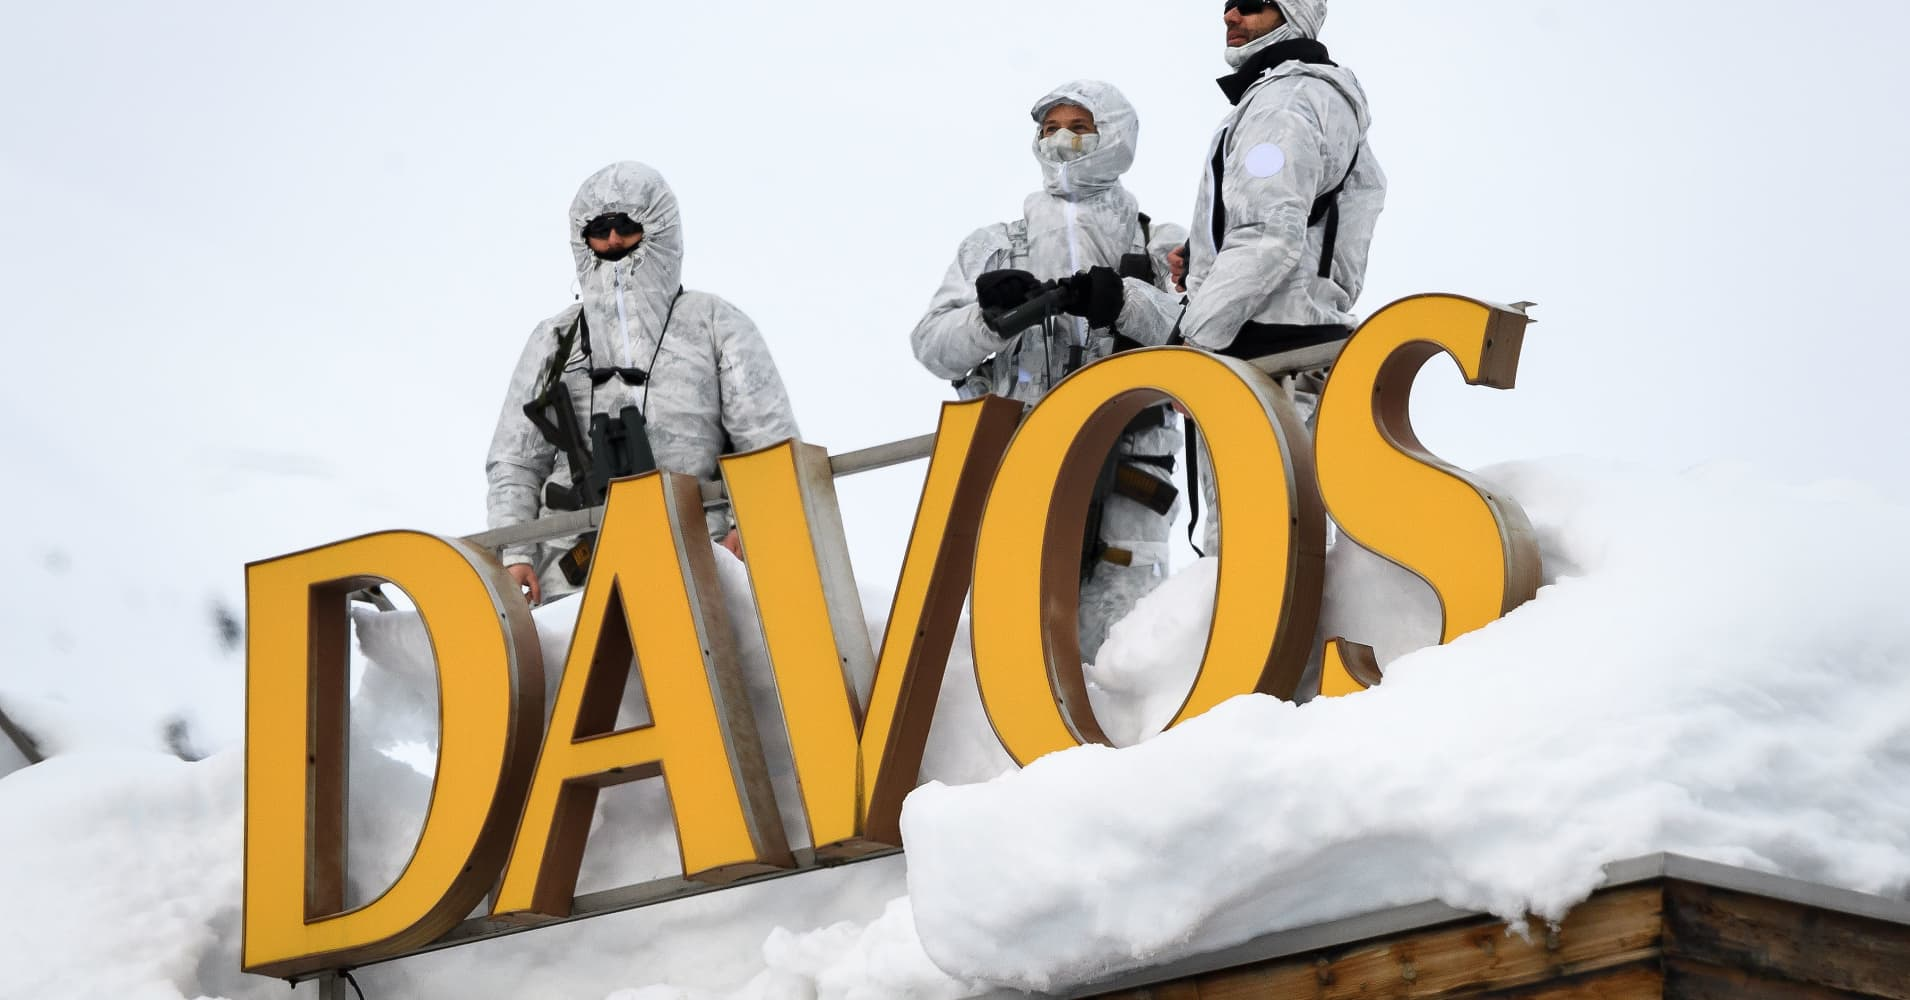 Davos opens with US-China contest as 'the key problem of our time'